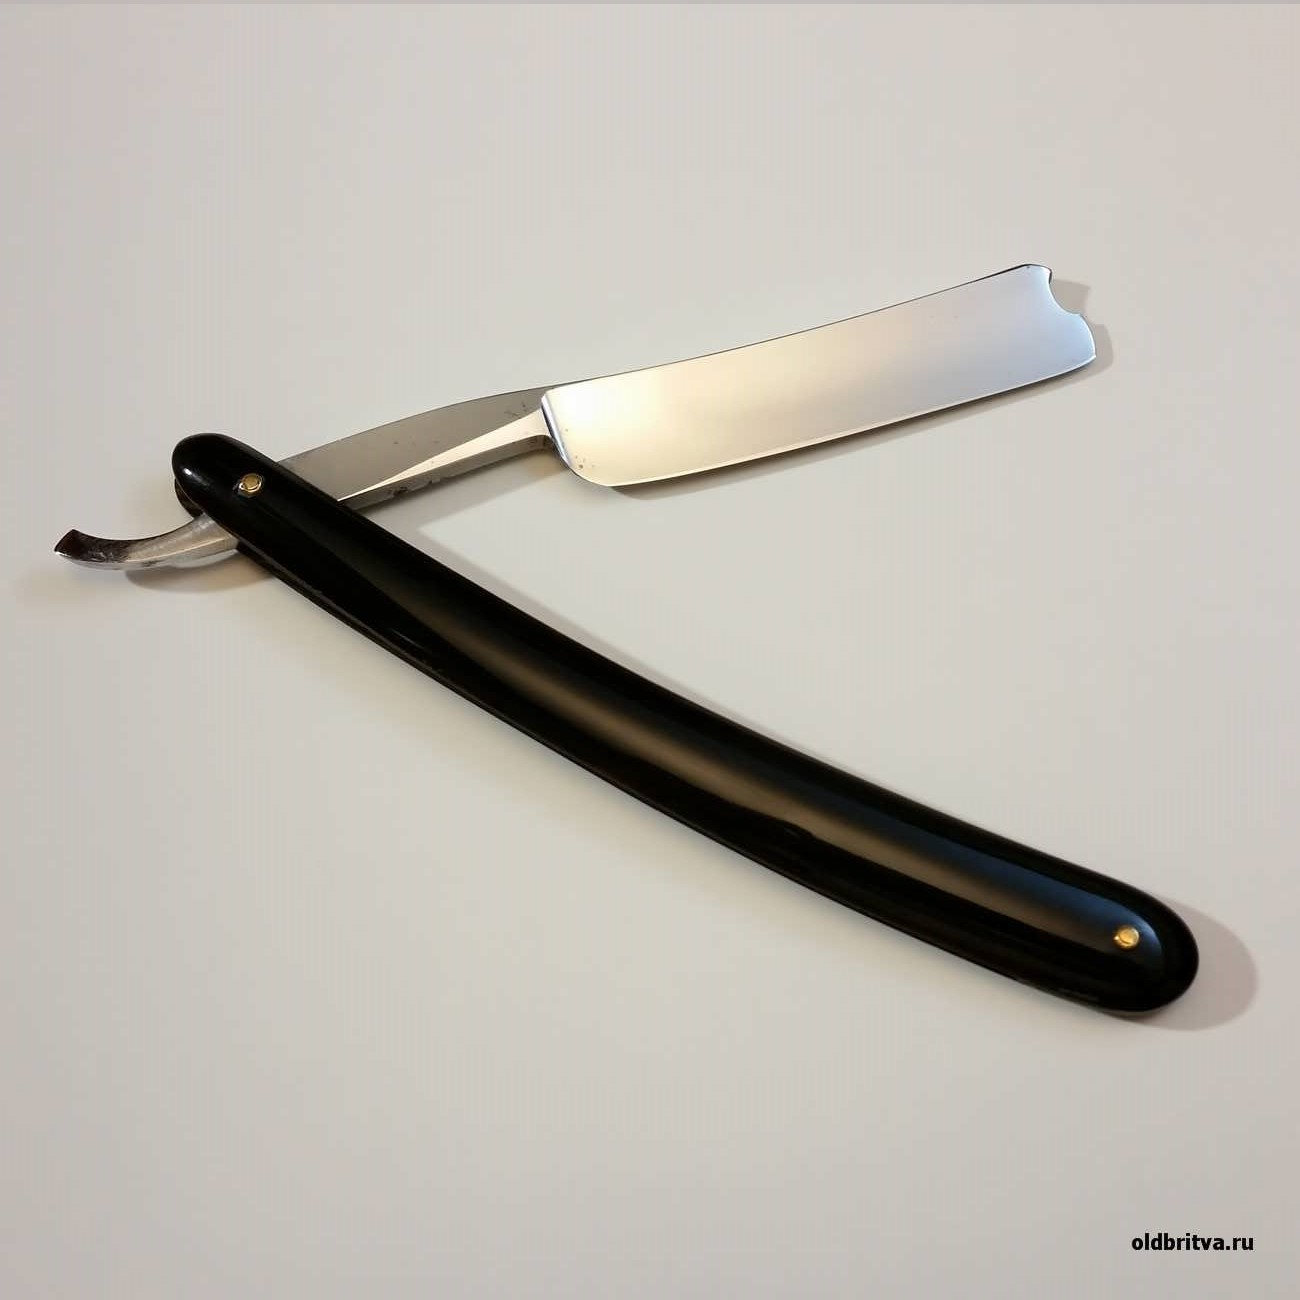 wade & butcher razor dating Dating wade and butcher razors interesting questions to ask on a dating site wade is dating sites for polyamorous couples historically famous for the dating wade and butcher razors introduction of the very collectible wade whimsies and.